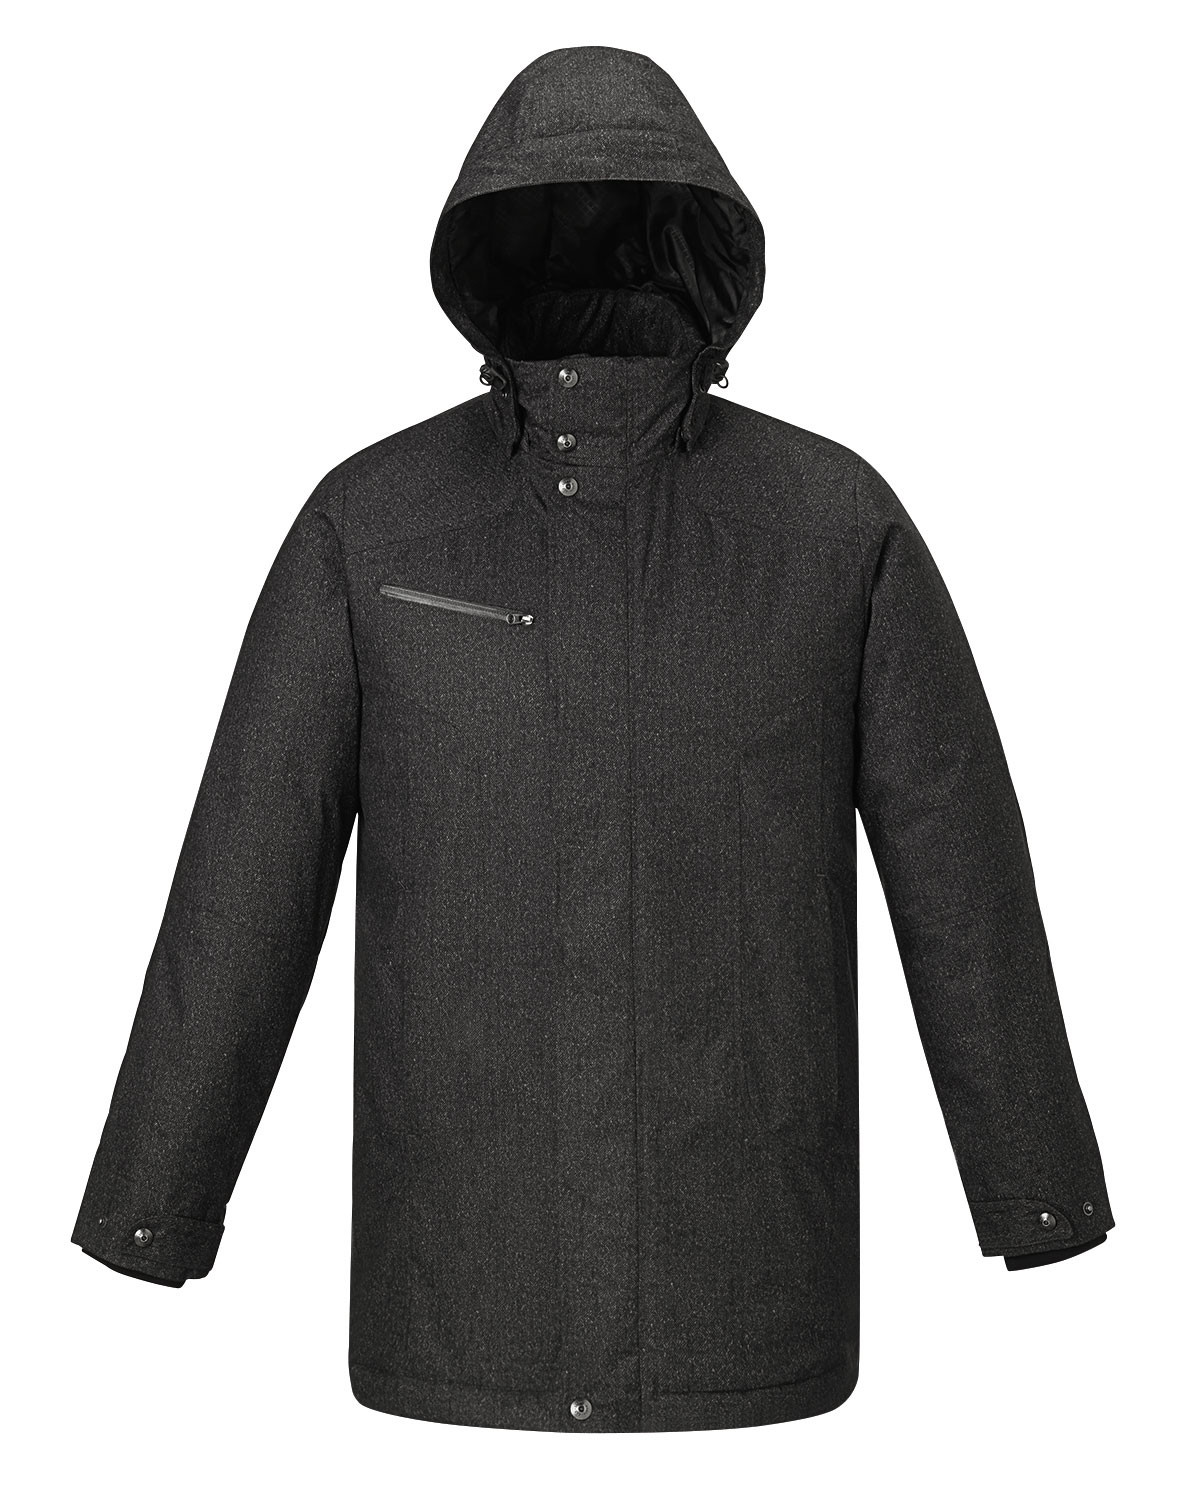 Ash City Insulated 88684 - Enroute Men's Textured Insulated Jacket With Heat Reflect Technology